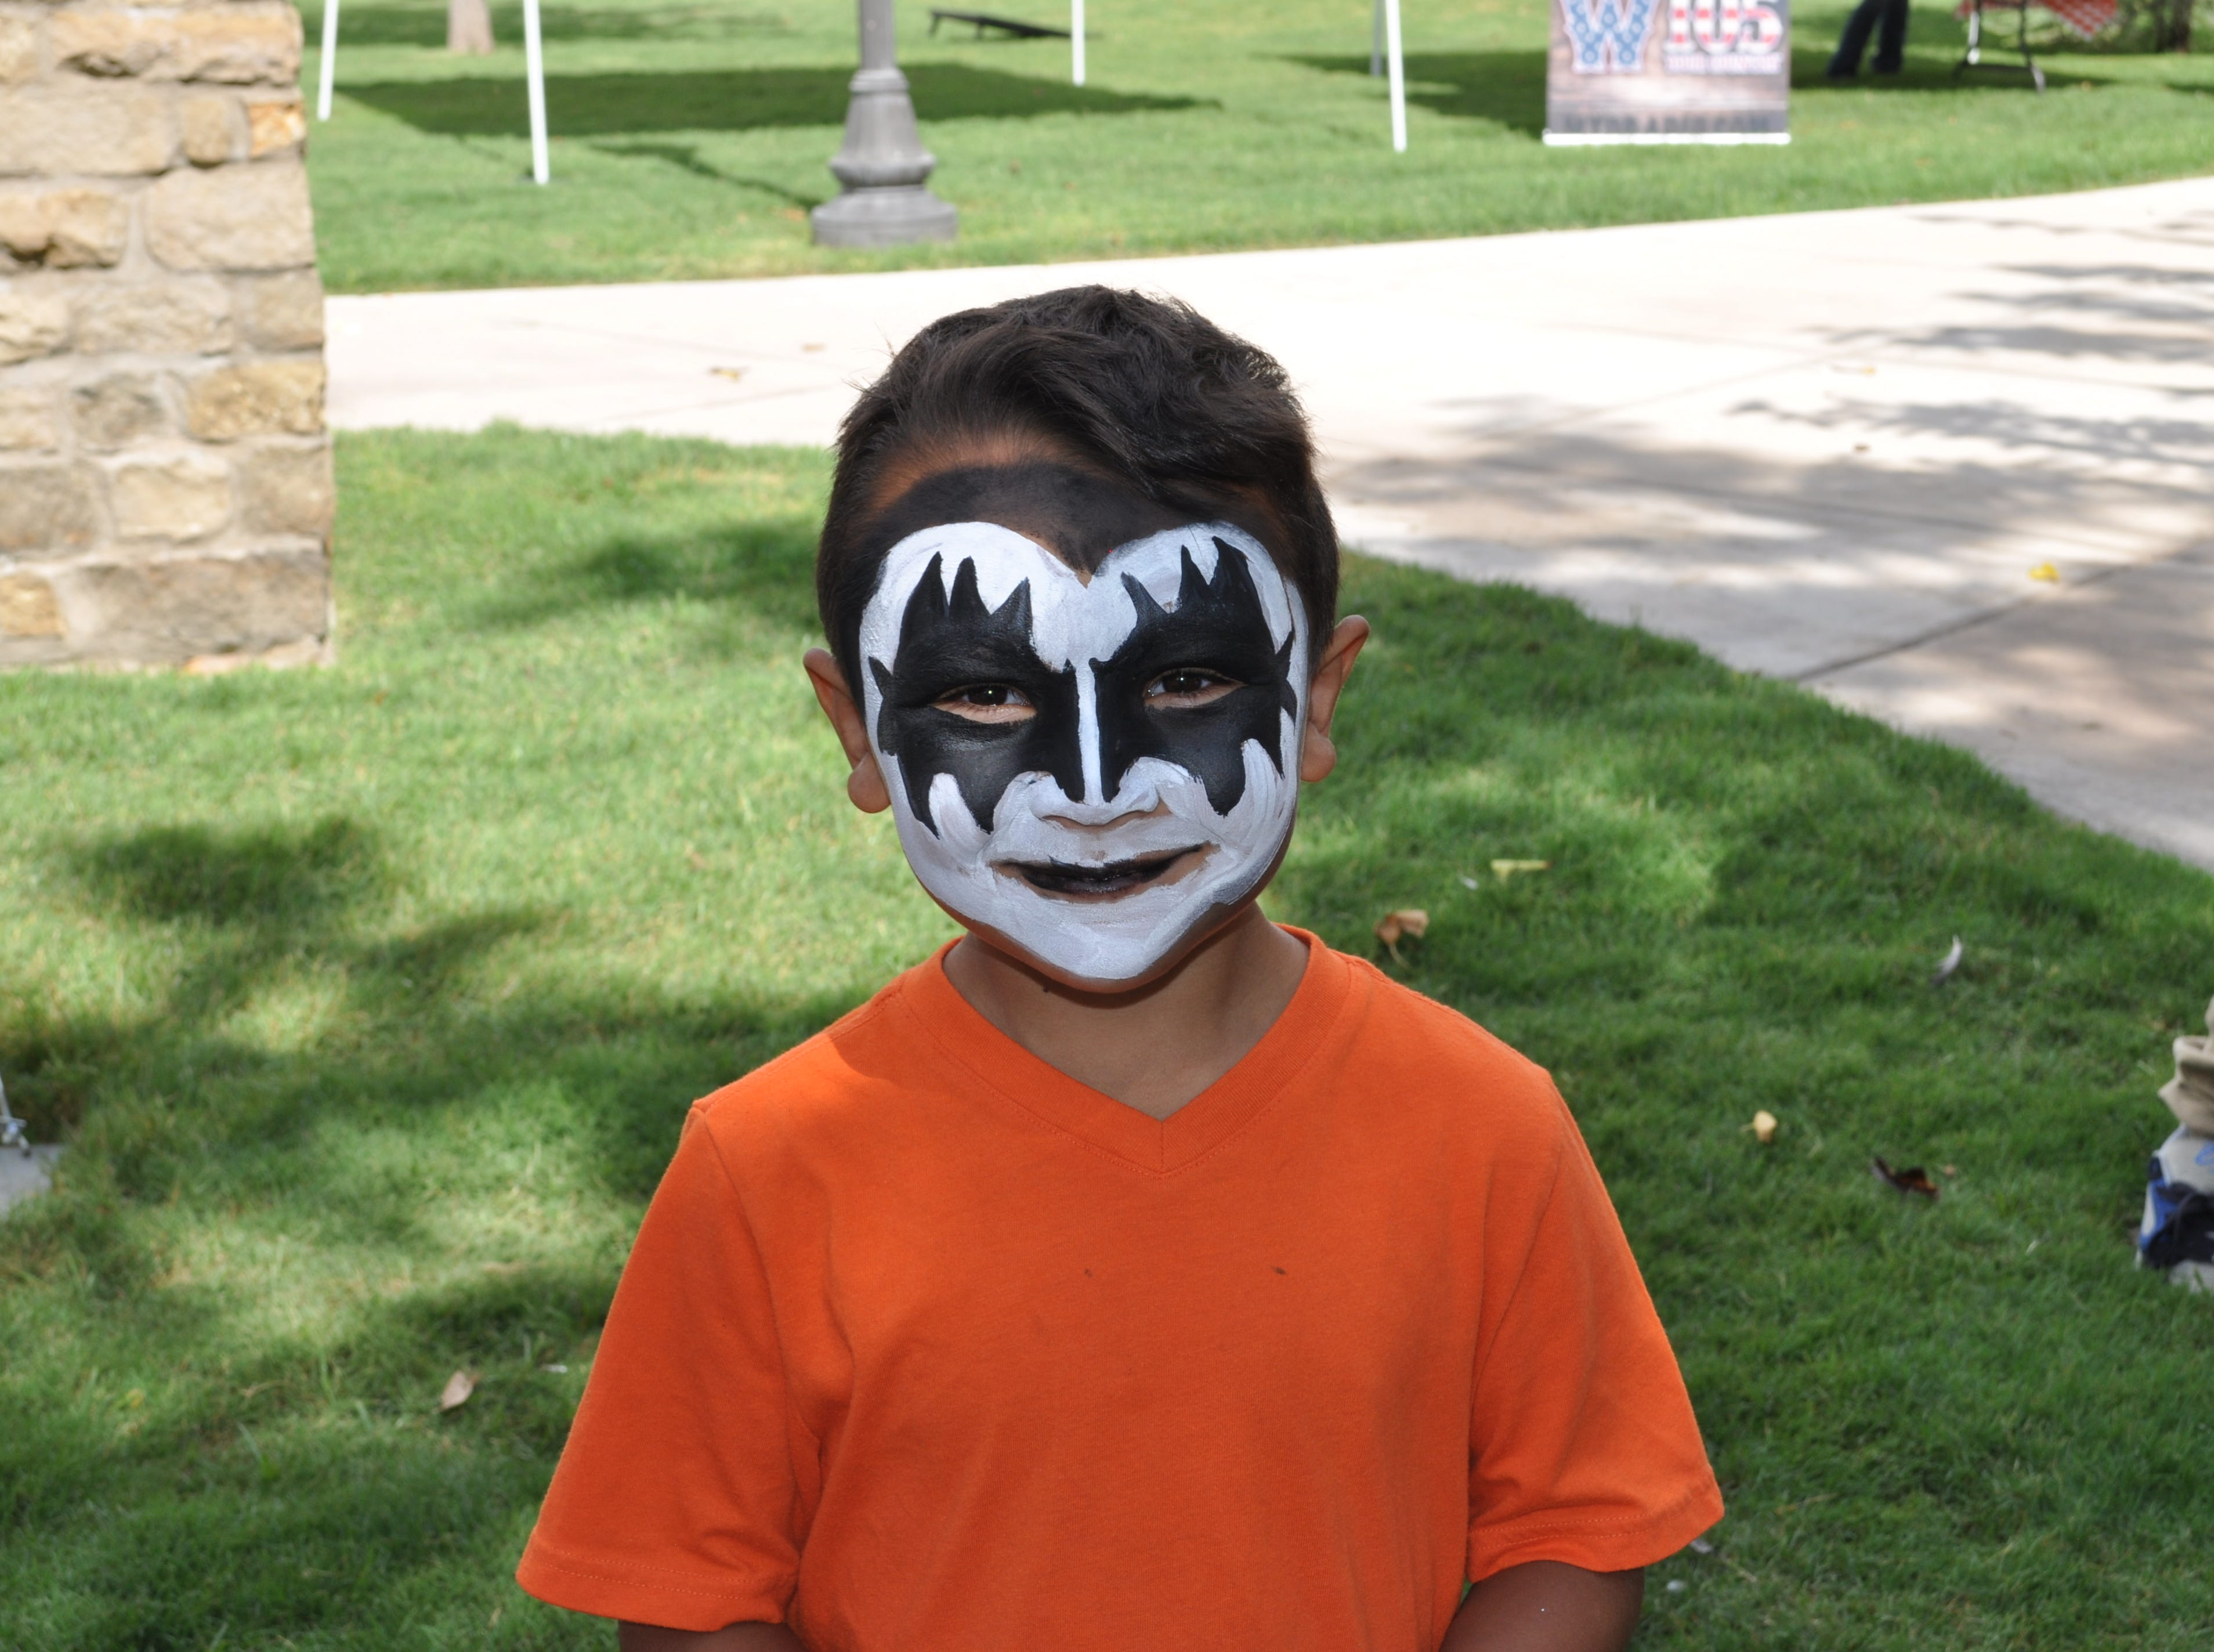 Face painting was among the activities available for children at Heritage Fest.